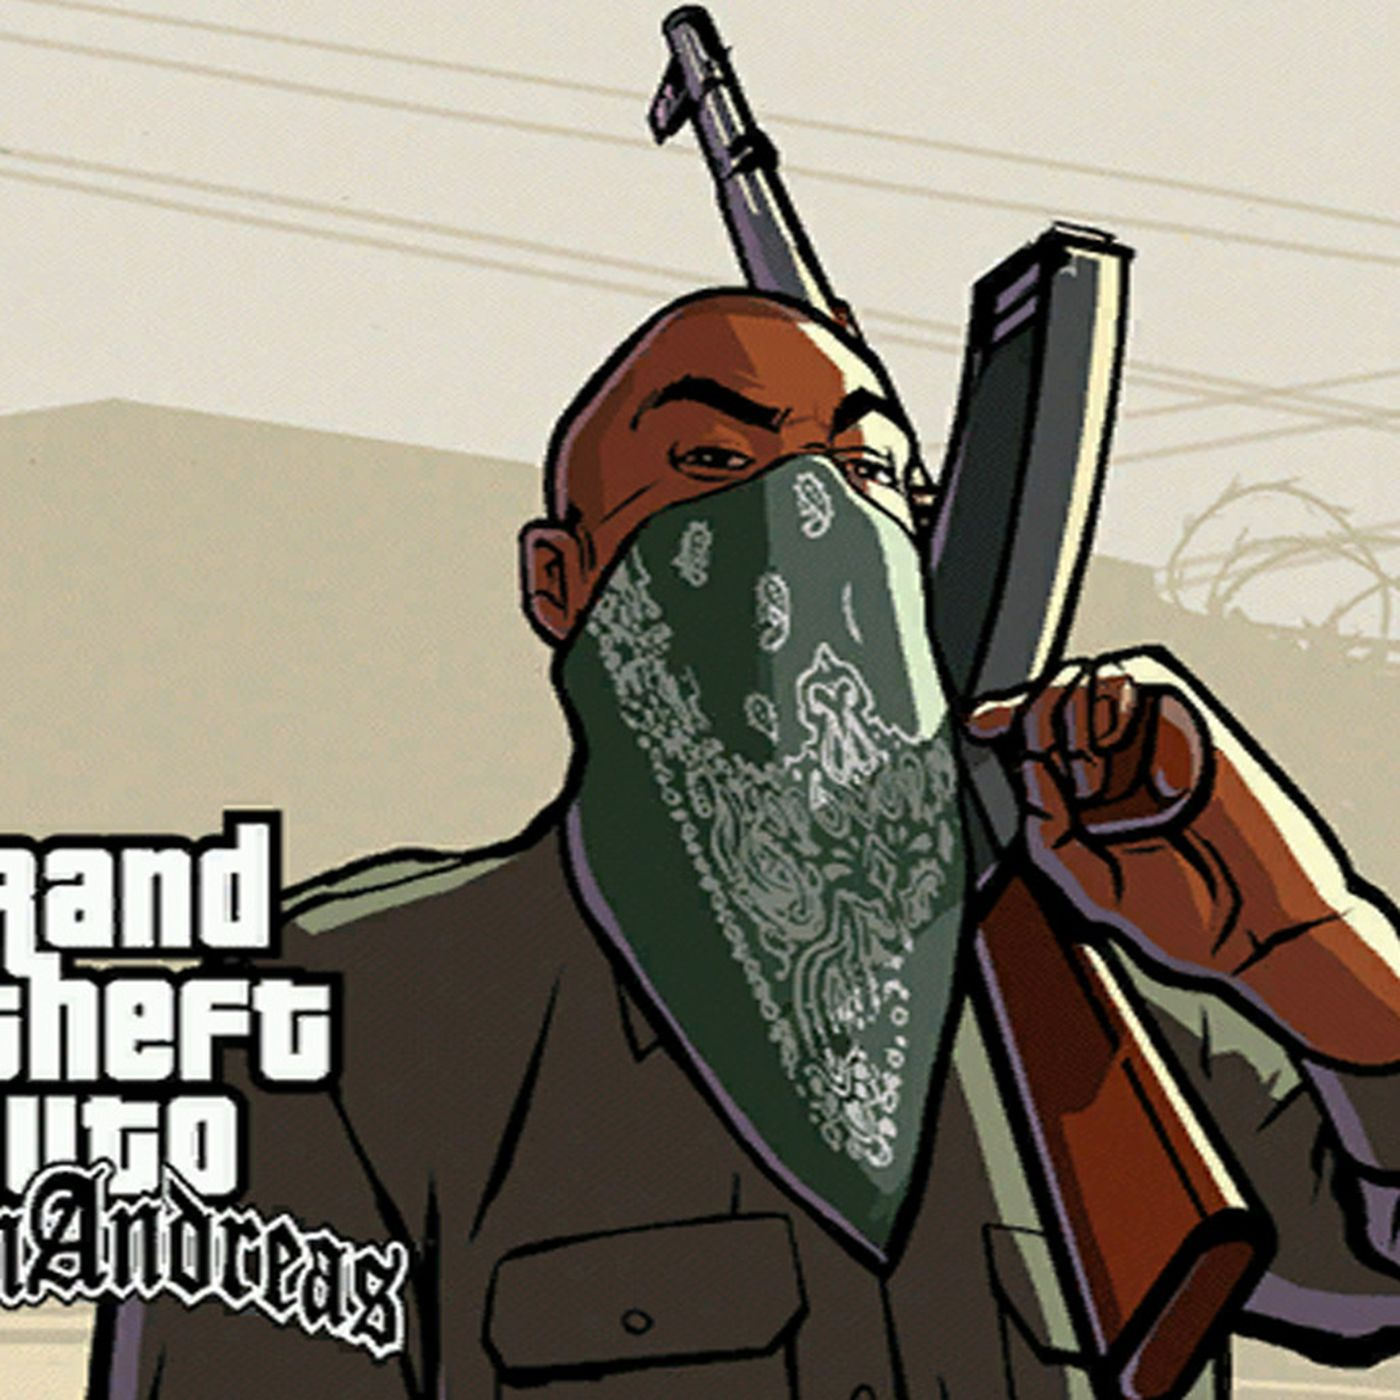 Grand Theft Auto: San Andreas 'Hot Coffee' modder tells the